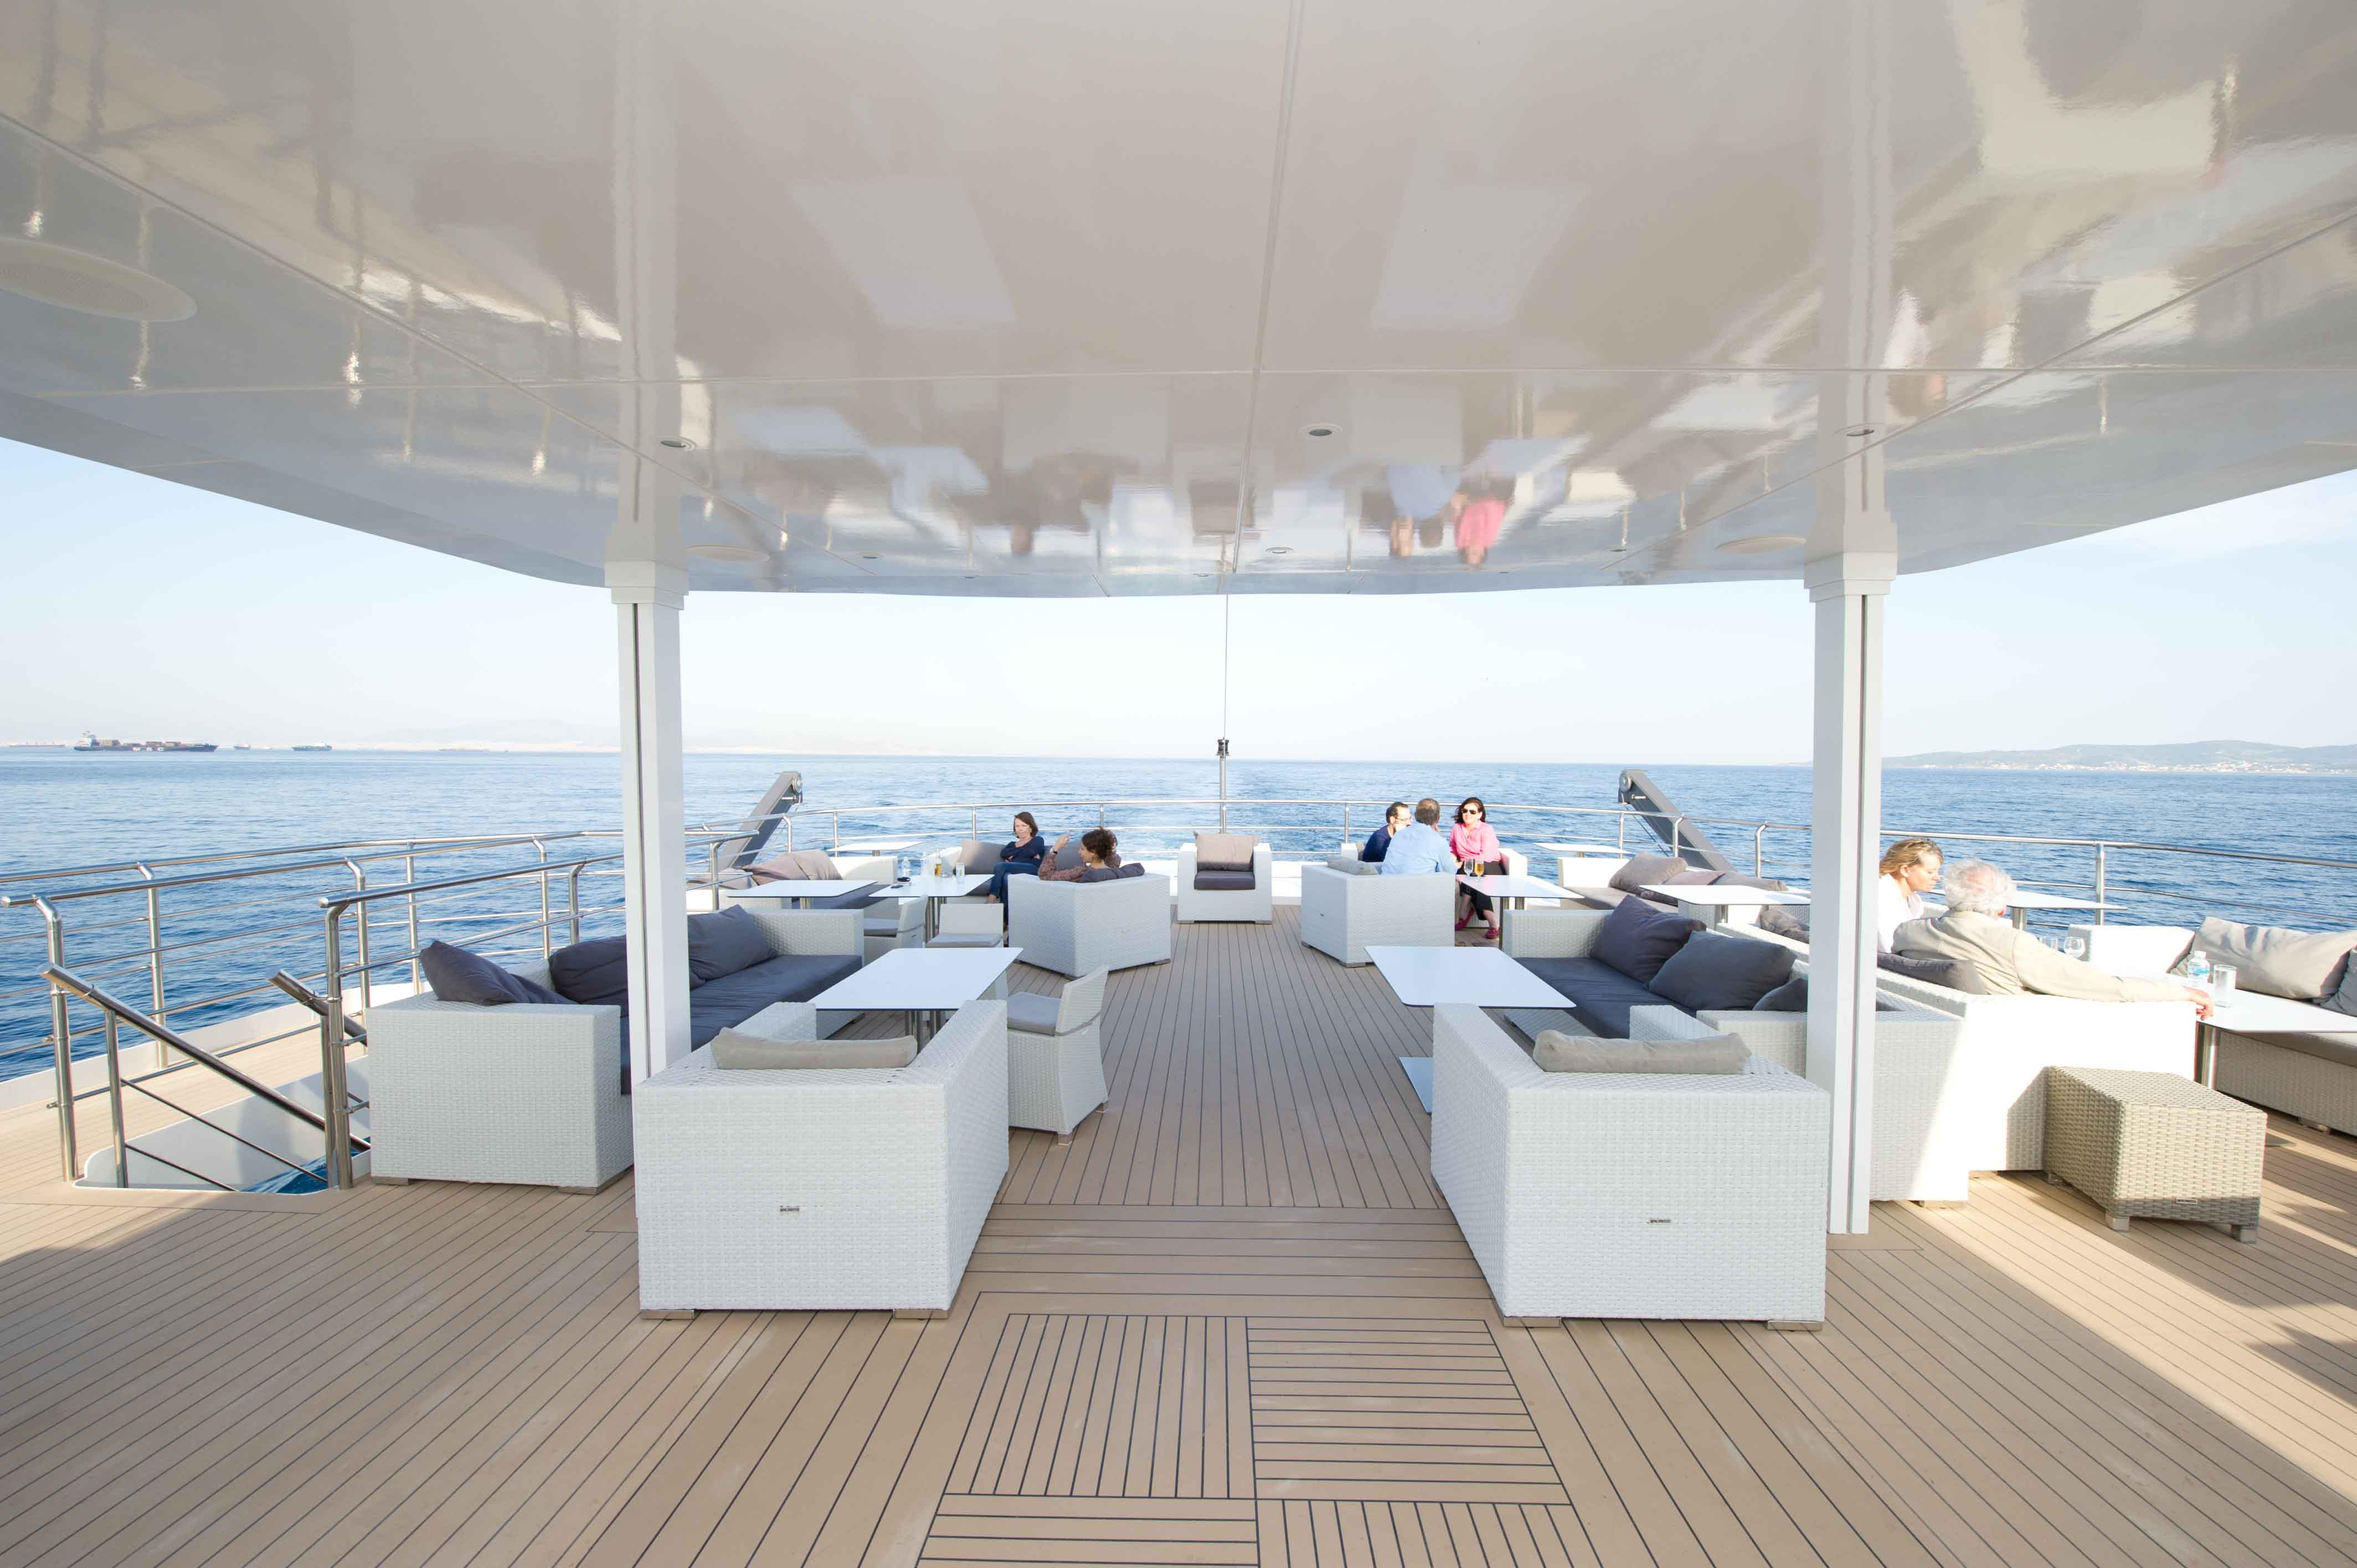 Outdoor lounge on the Oceans Deck